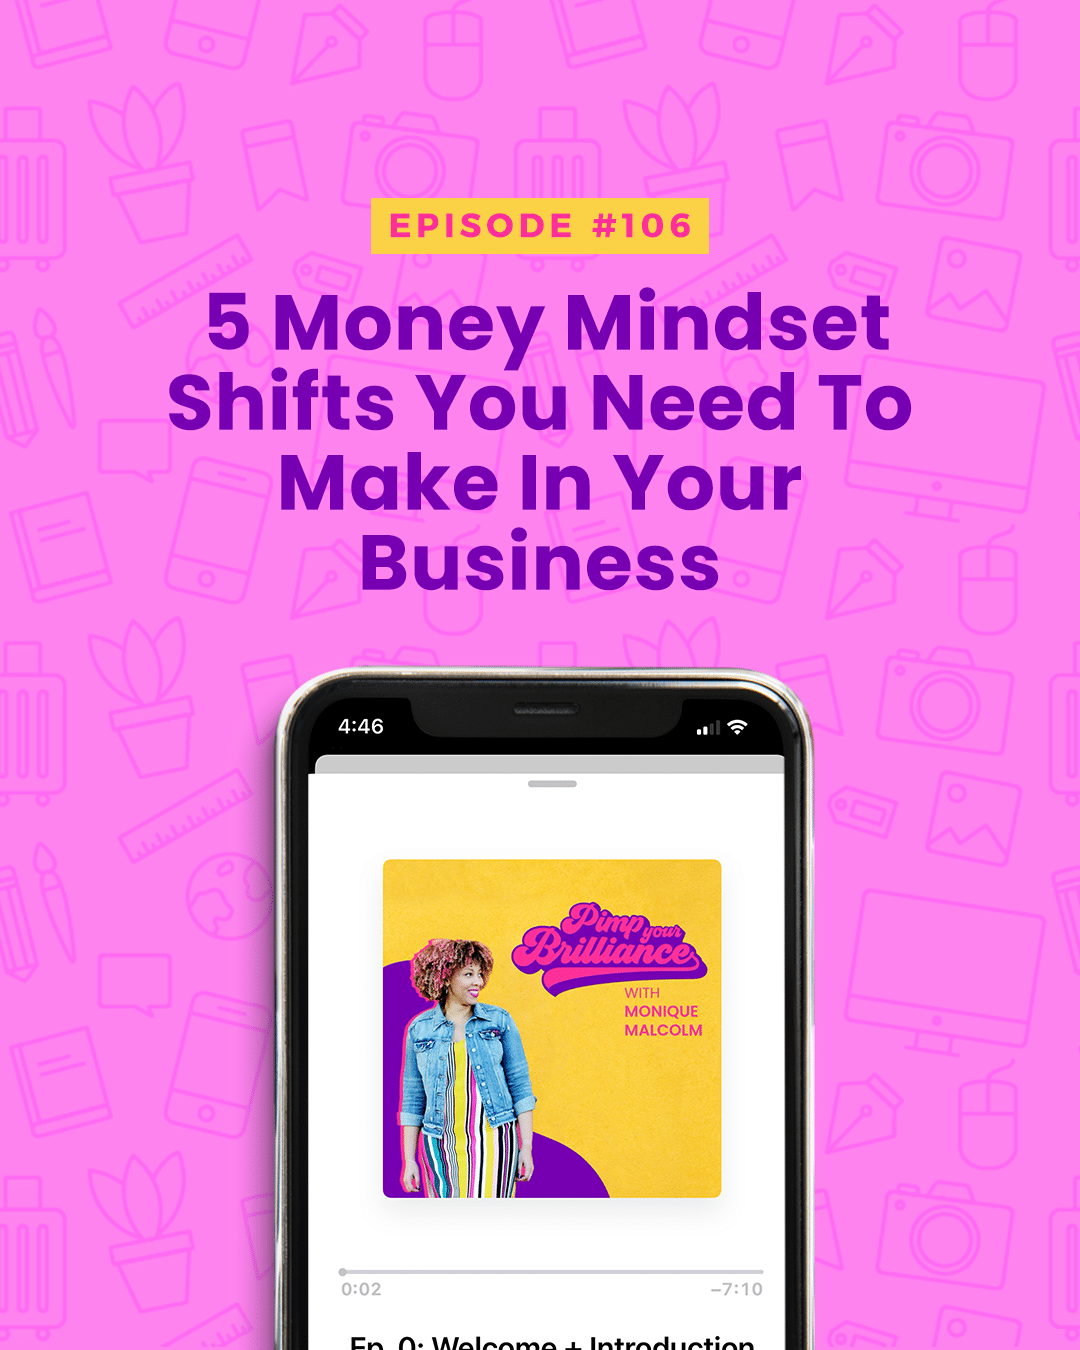 5 Money Mindset Shifts You Need To Make - Pimp Your Brilliance